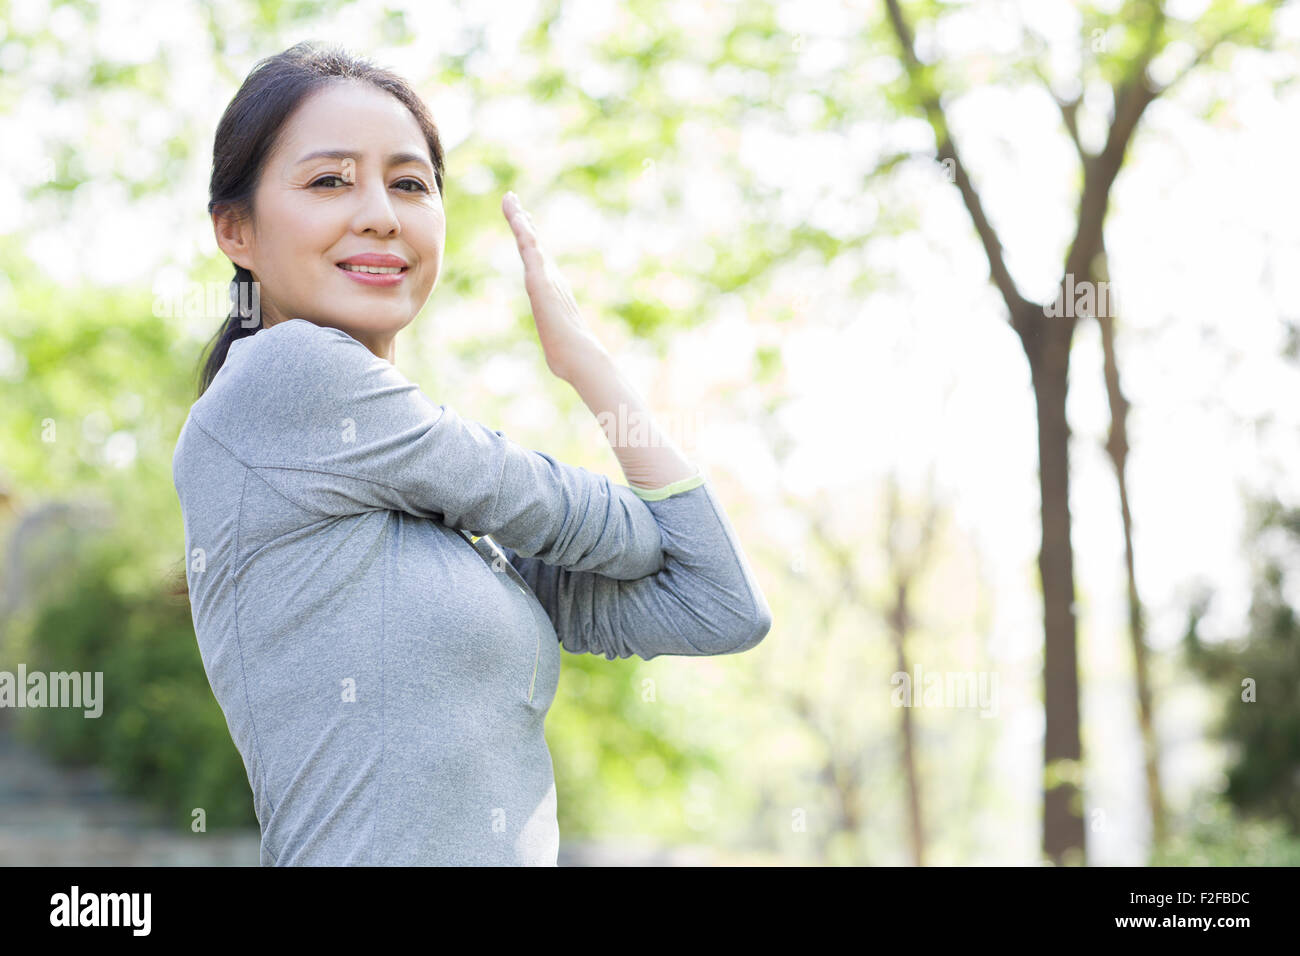 Happy mature woman exercising in park - Stock Image